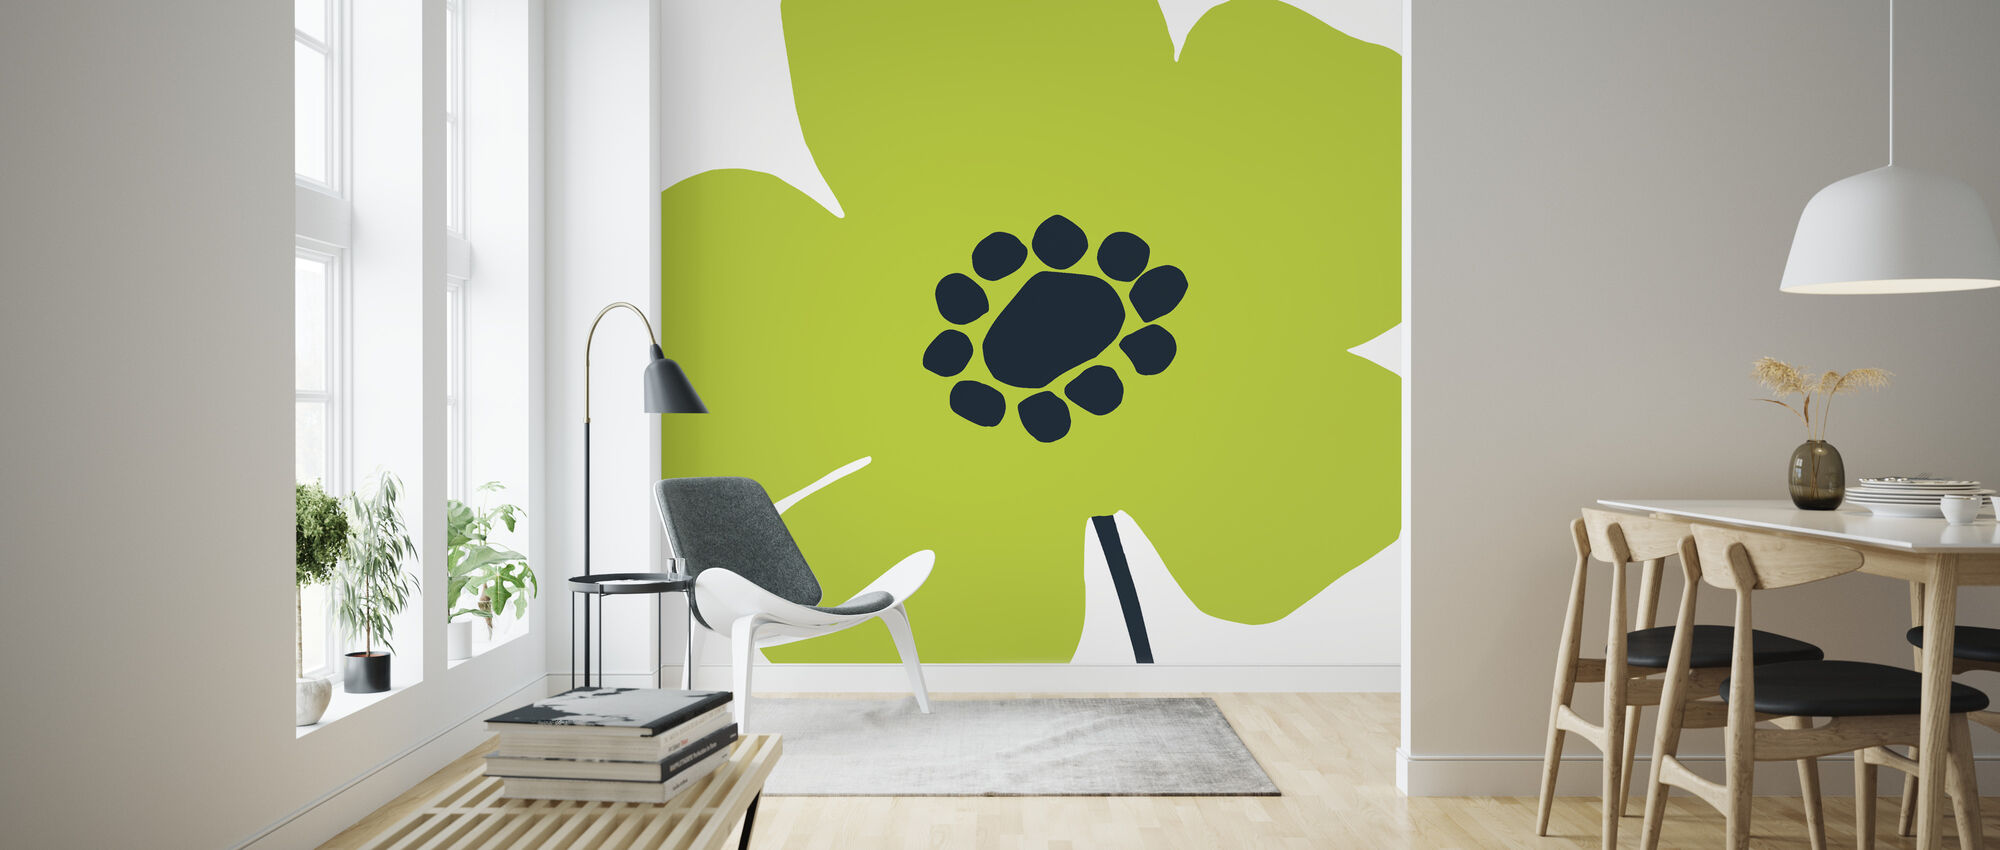 Pop Art Floral IV - Wallpaper - Living Room